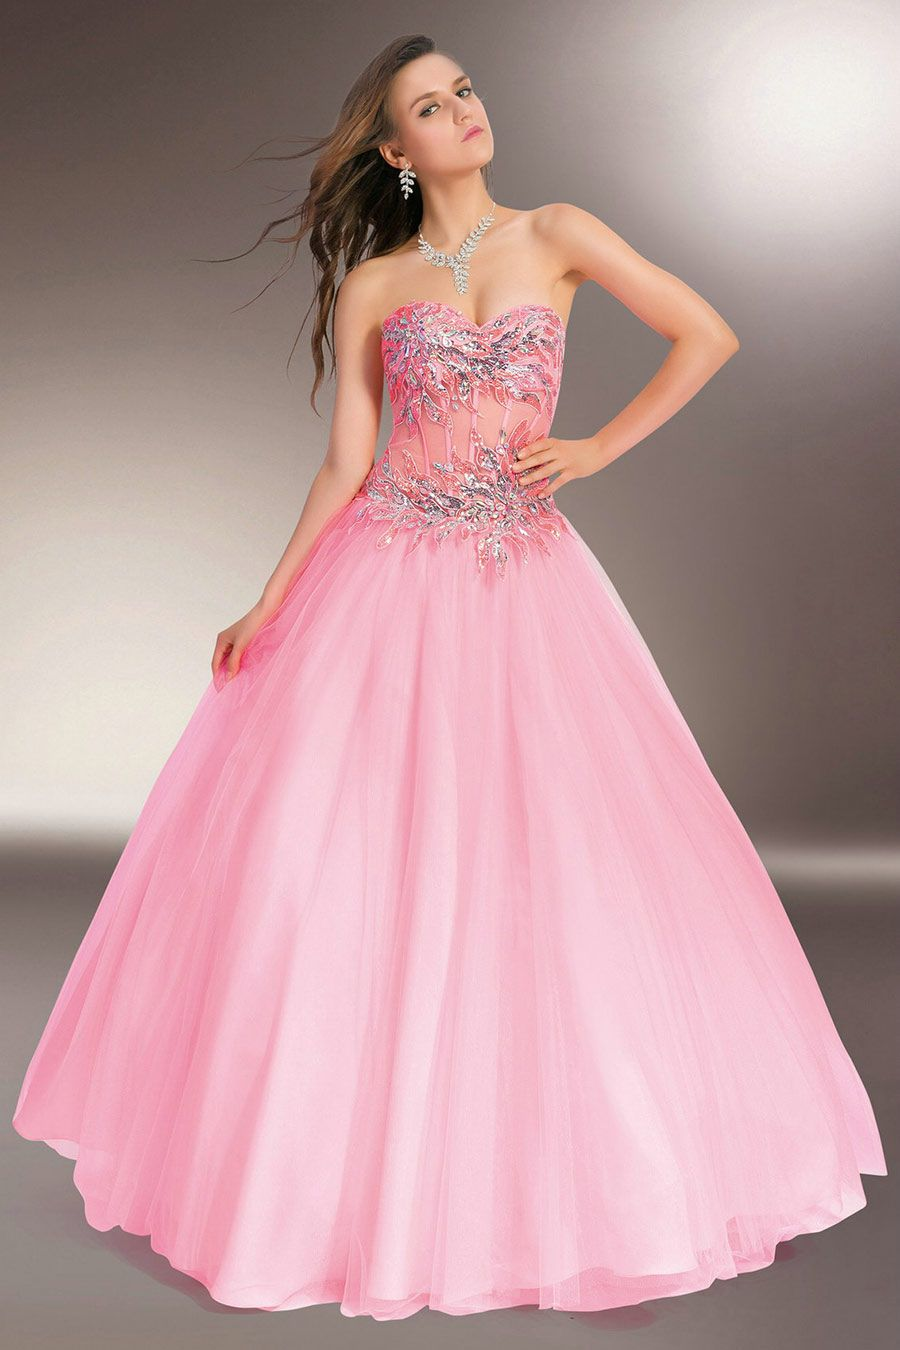 Vestidos de 15 anos largos color rosa (18) | angel | Pinterest ...